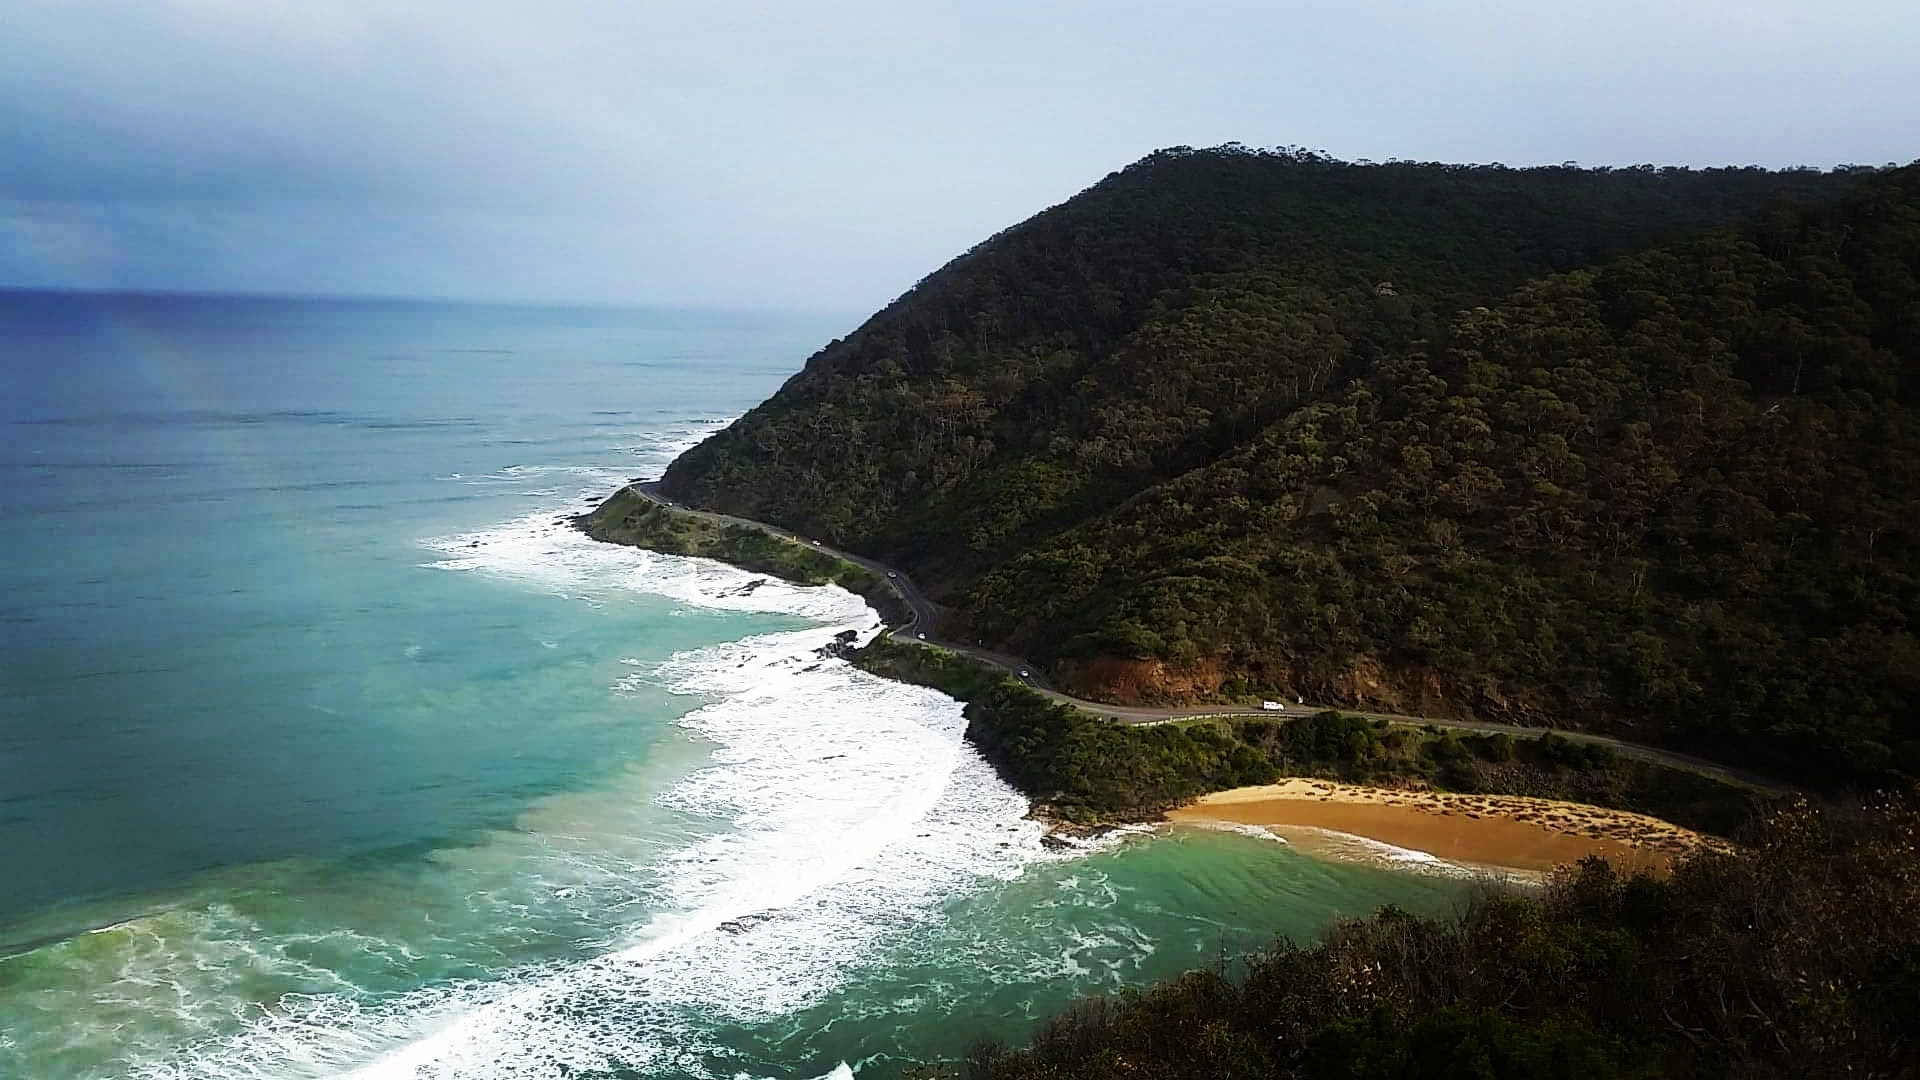 Sea Cliff at Daytime, Beach, Water, Trees, Sky, HQ Photo